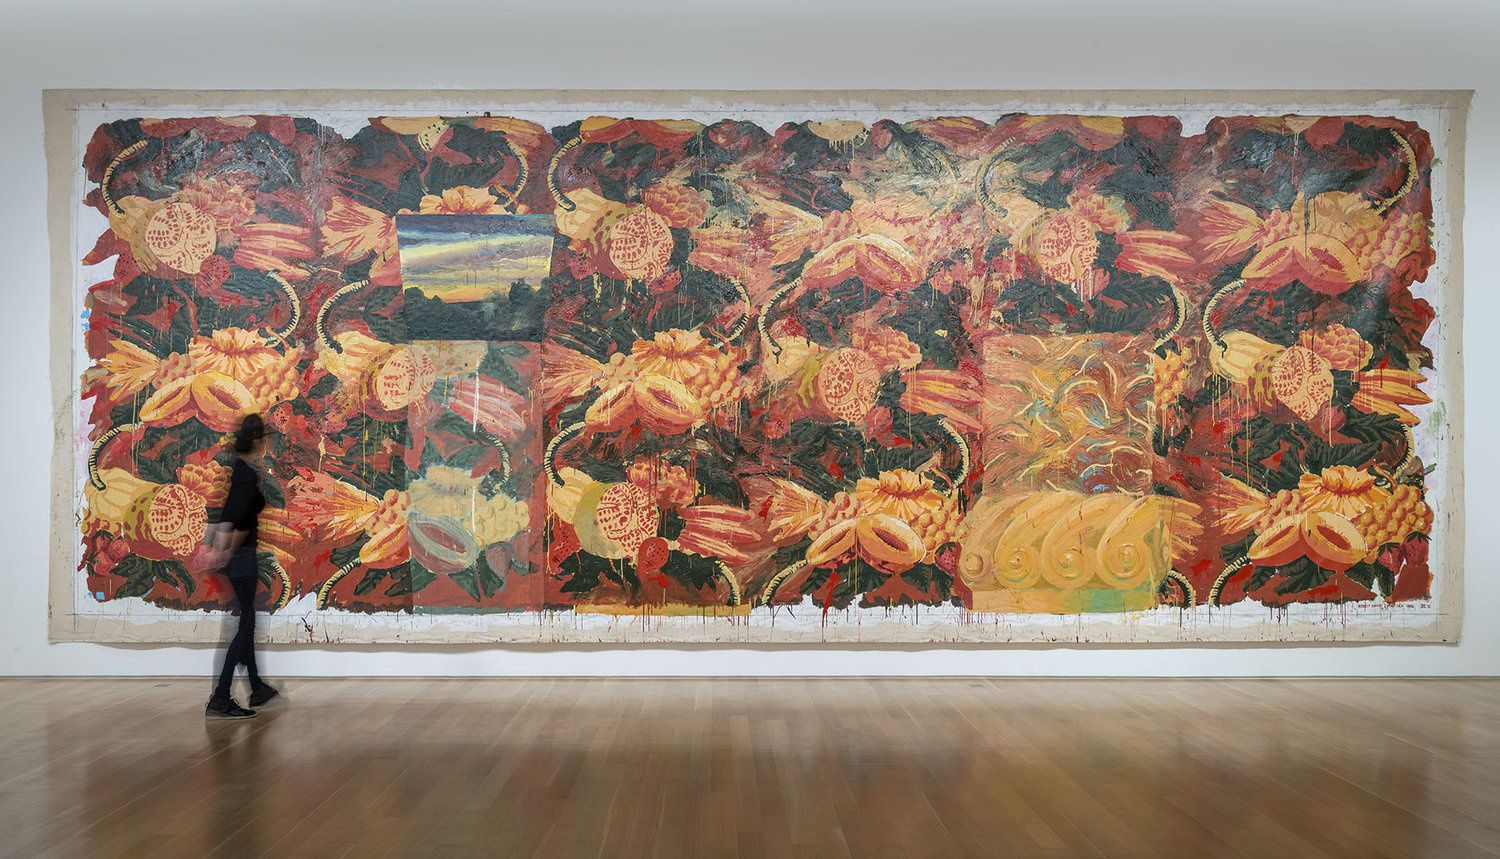 Big Bungalow Suite III, 1991-92, Acrylic on canvas, 11 x 30 ft. Collection of the Artist. (Installation View: The Nerman Museum of Contemporary Art, OverlandPark, KS, 2015